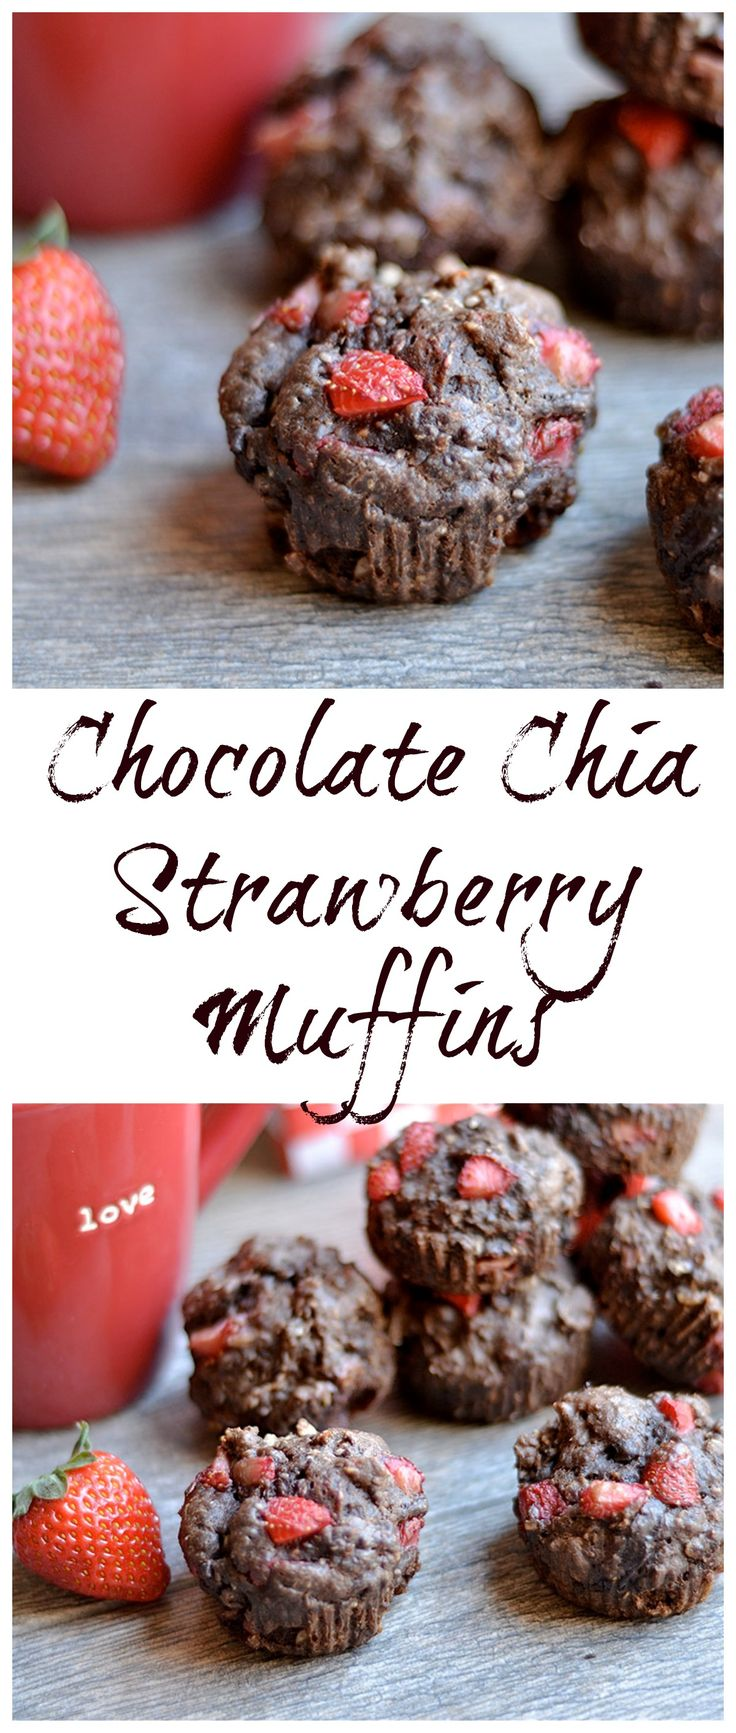 A perfect chocolate-y and strawberry breakfast that is perfect for Valentine's Weekend! Packed with nutrients too!